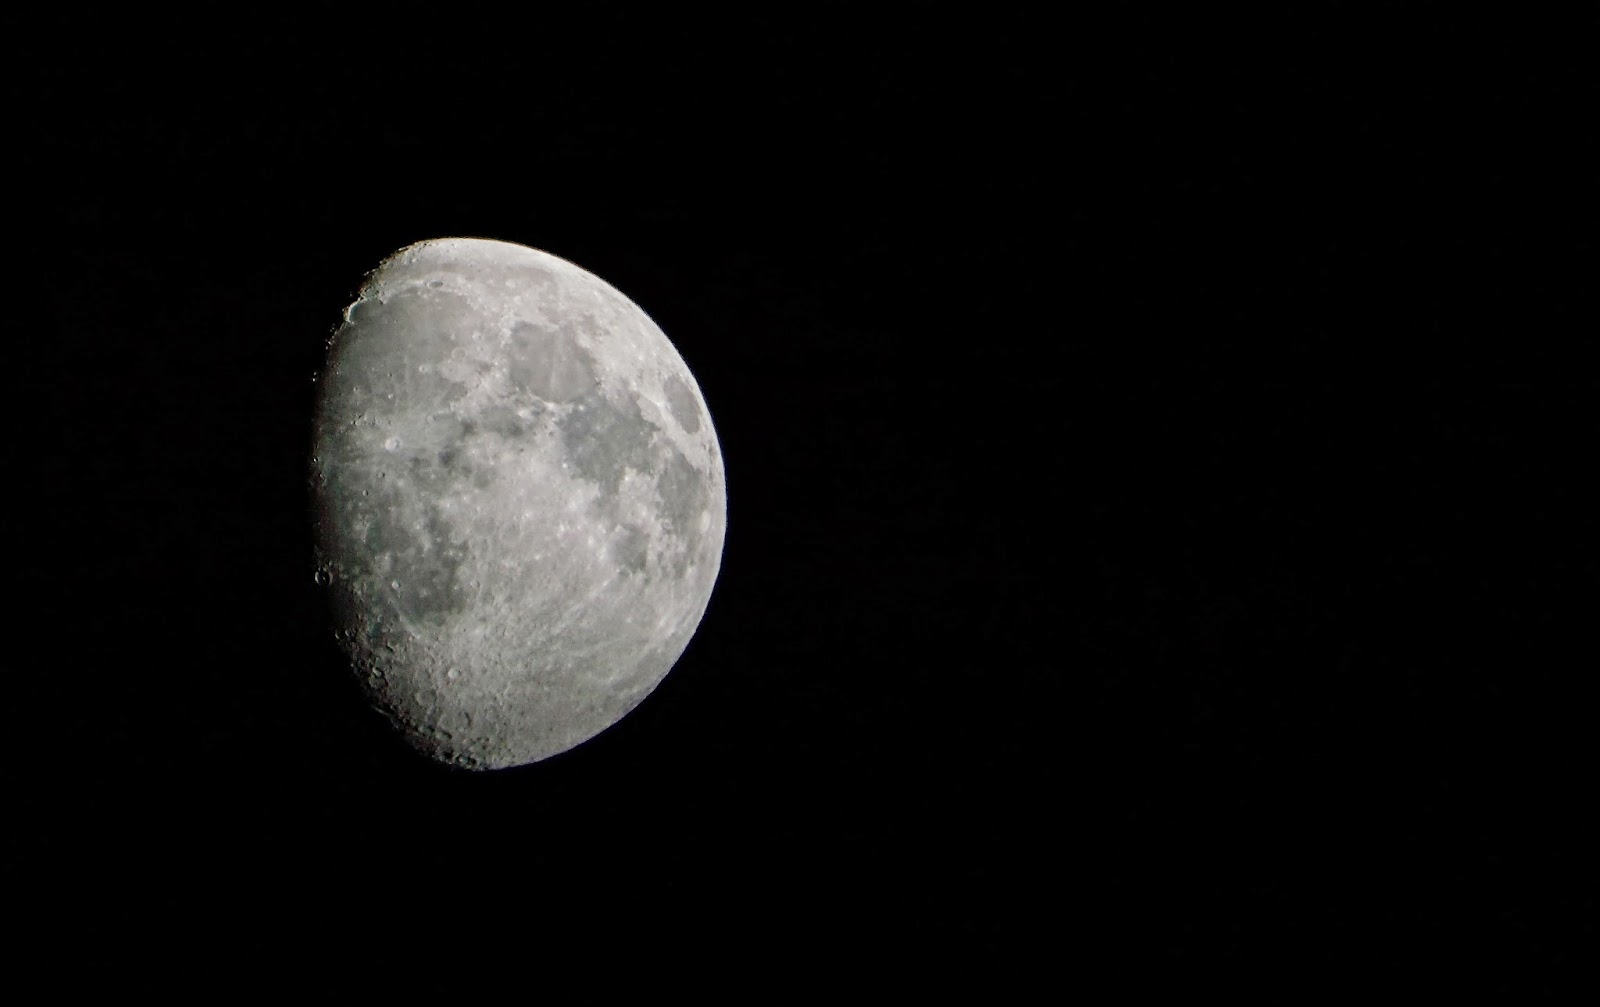 Shoot of the moon using the travel scope 70 and the Nikon dSLR.